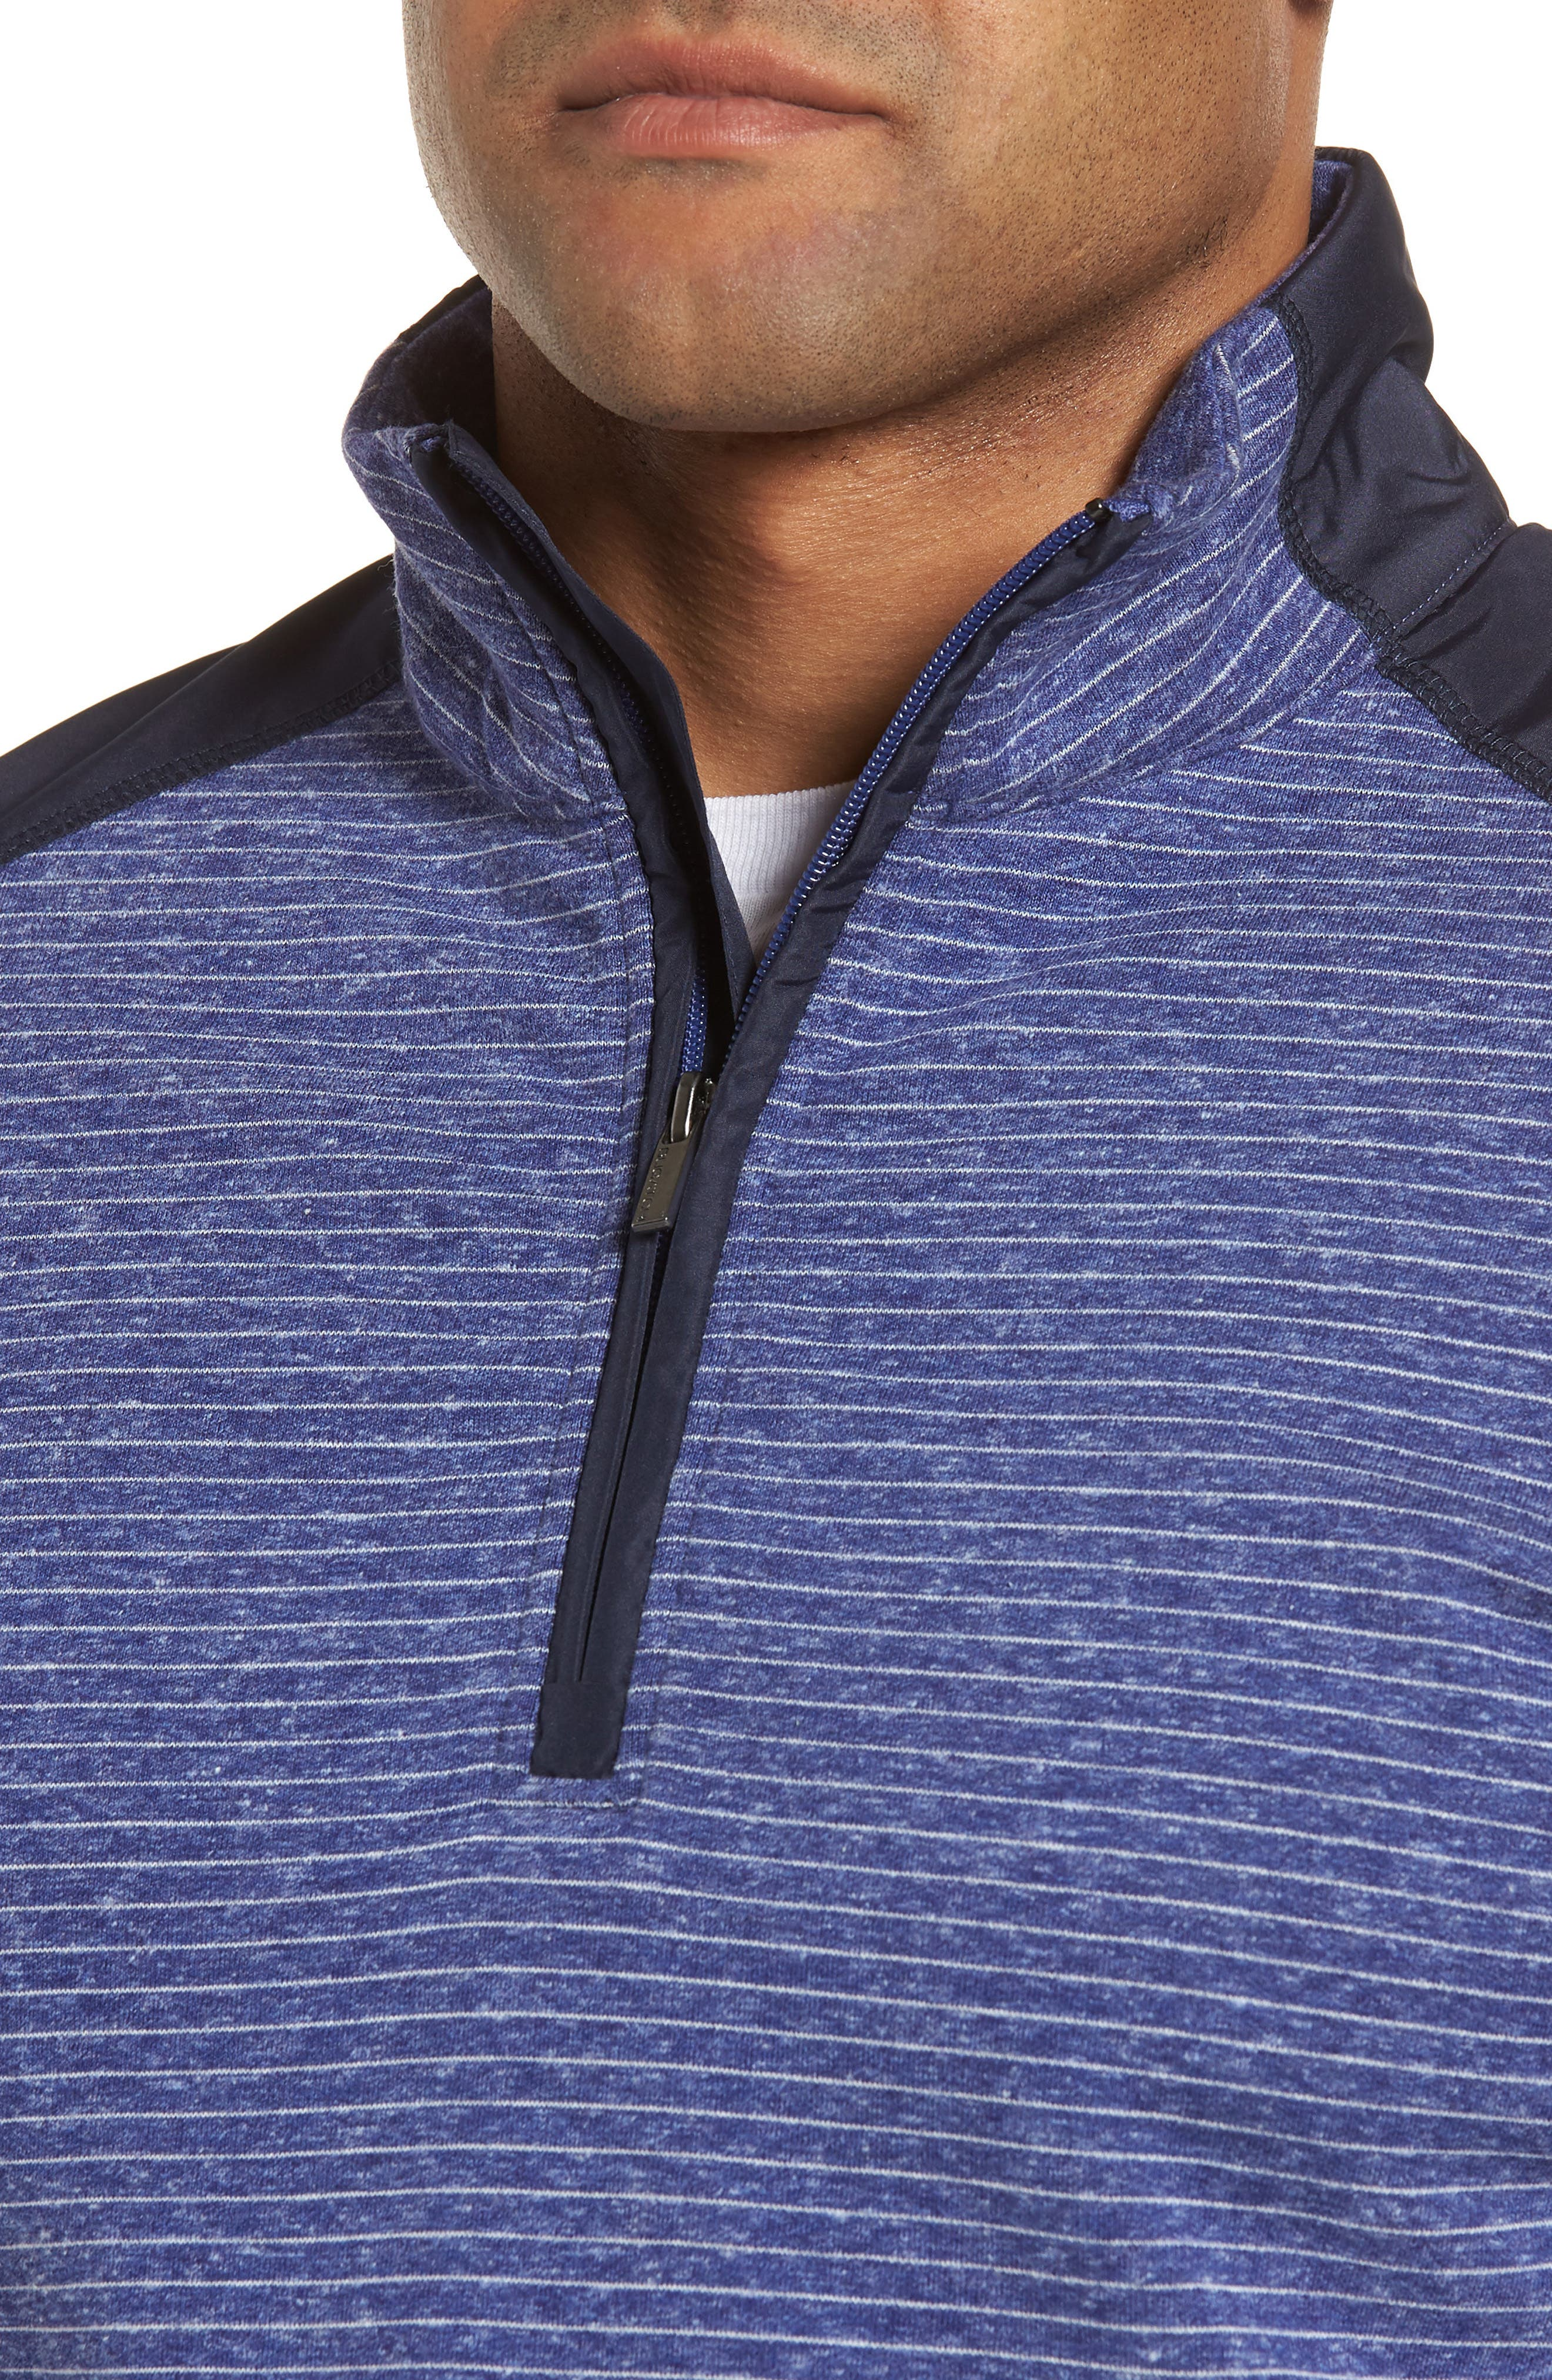 Regular Fit Stripe Quarter Zip Pullover,                             Alternate thumbnail 19, color,